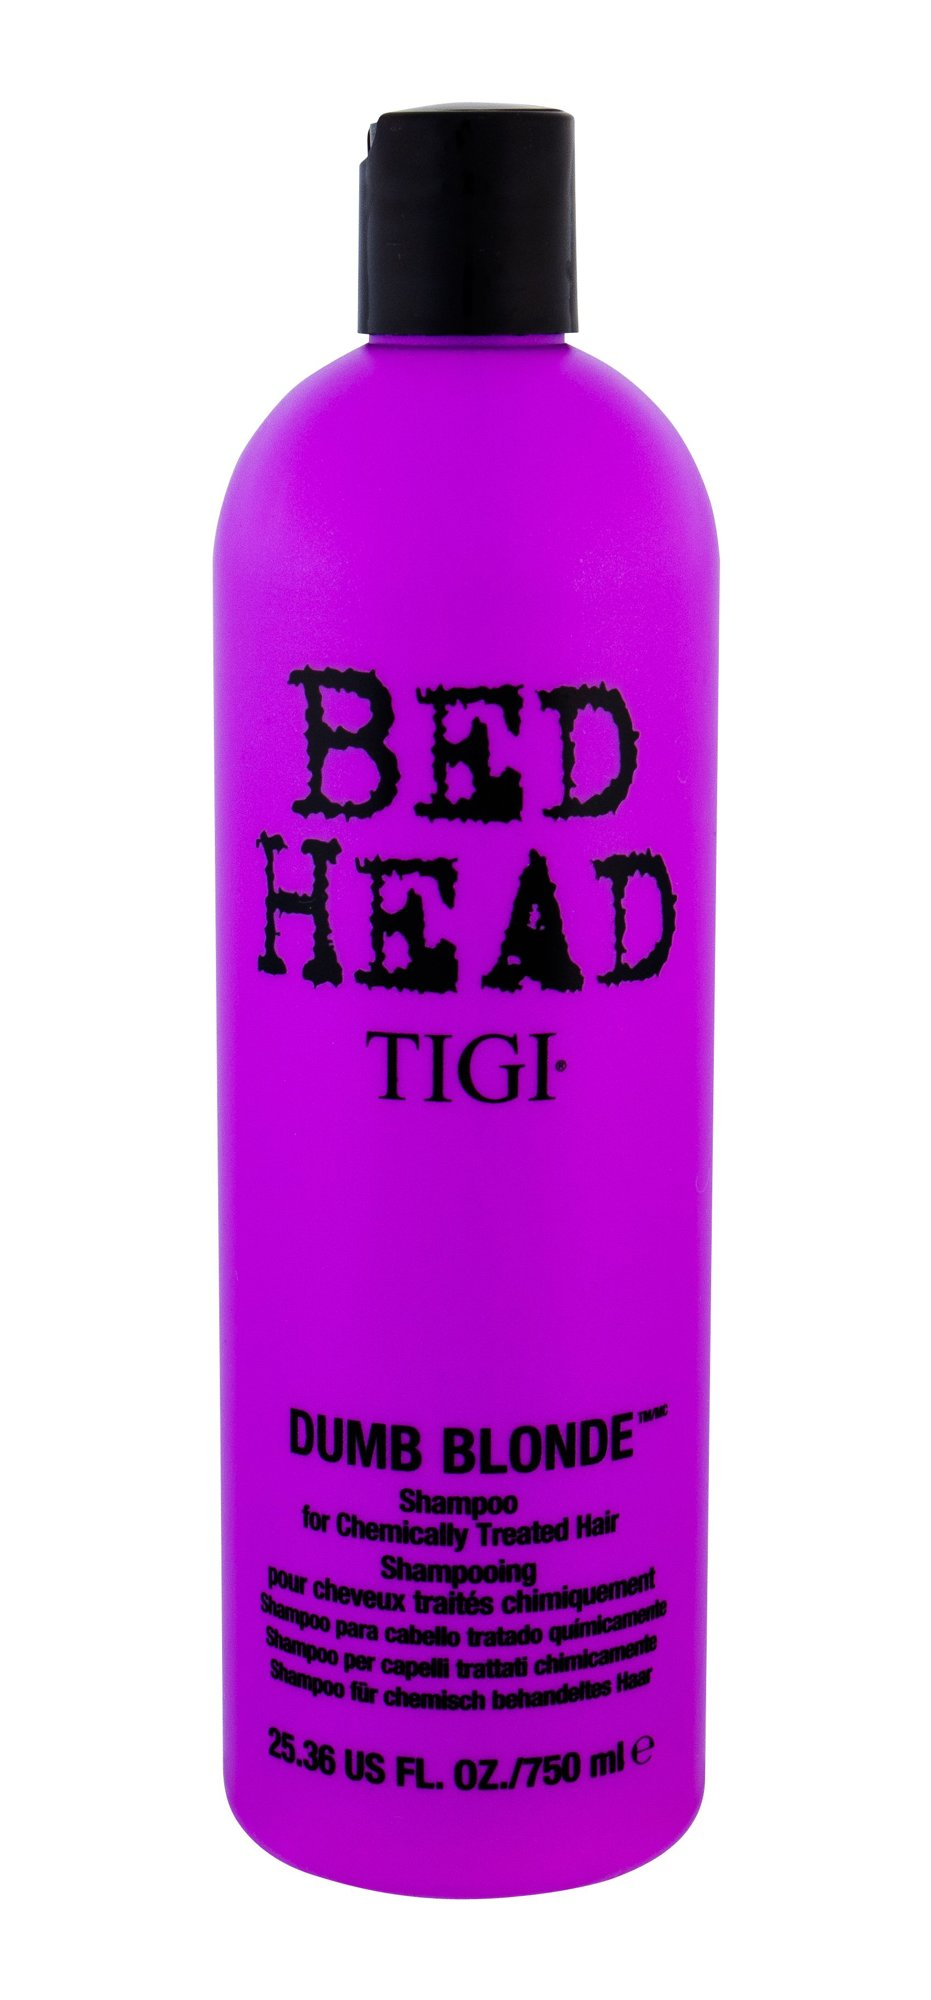 Tigi Bed Head Dumb Blonde Cosmetic 750ml